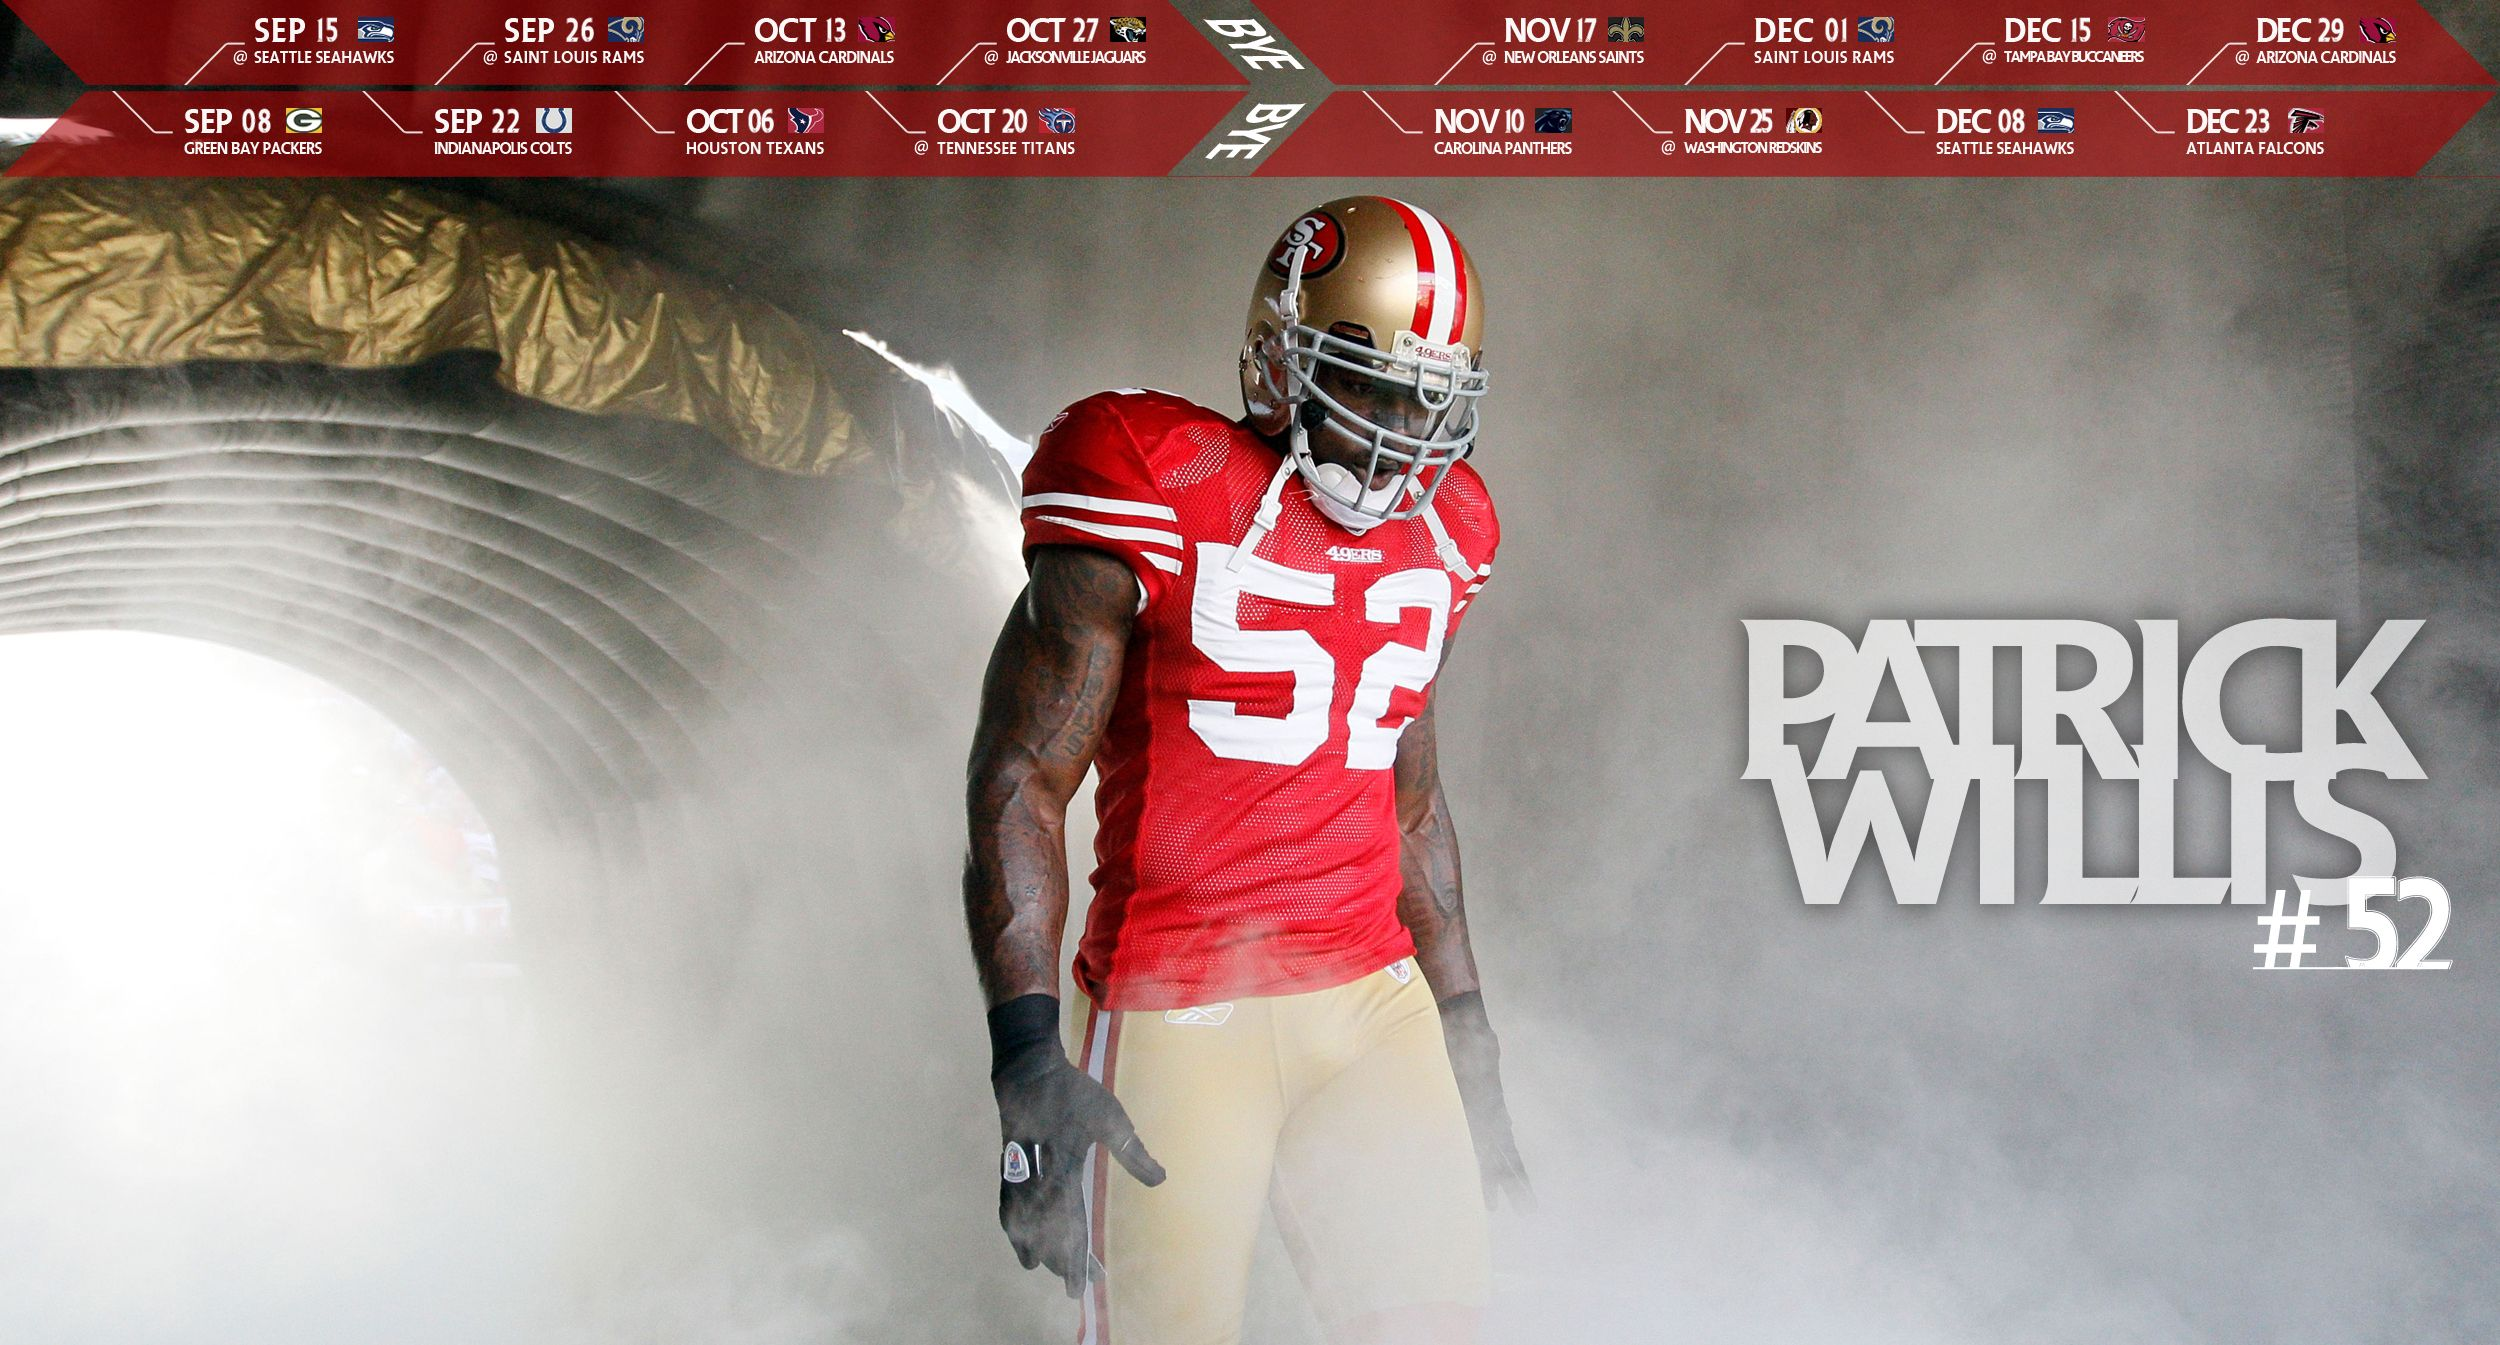 49ers wallpaper 2013 Patrick Willis desktop wallpaper